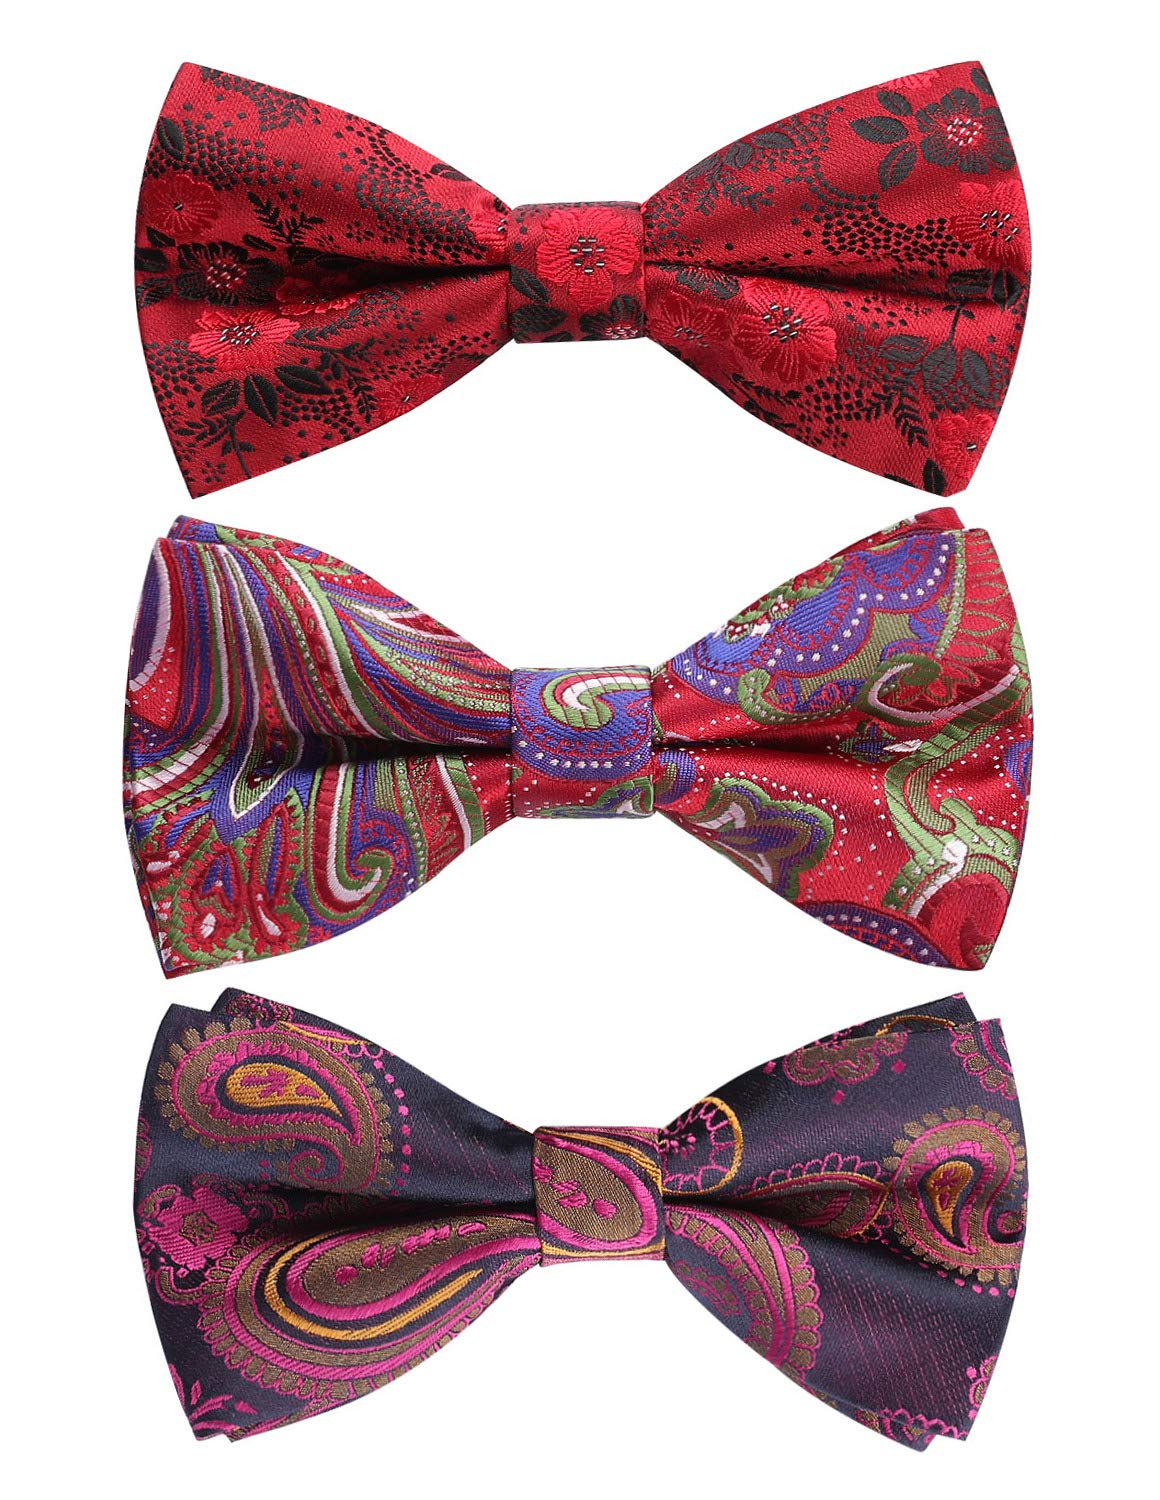 BASH 8 PACKS Elegant Adjustable Pre-tied bow ties for Men Boys in Different Colors N